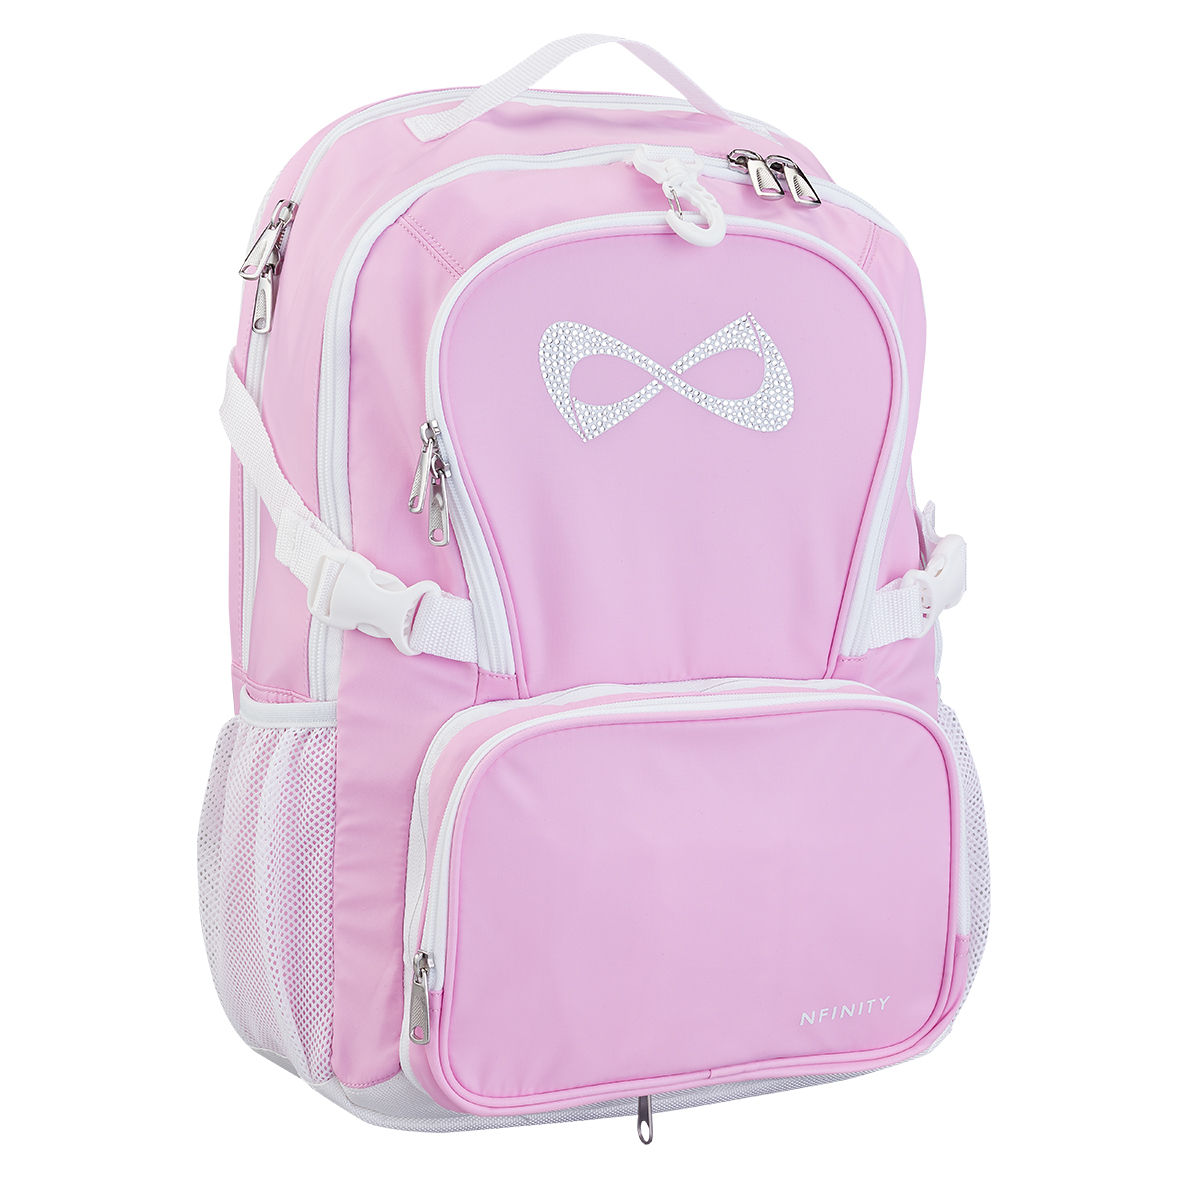 81ae1f2bed20 Nfinity Princess Backpack